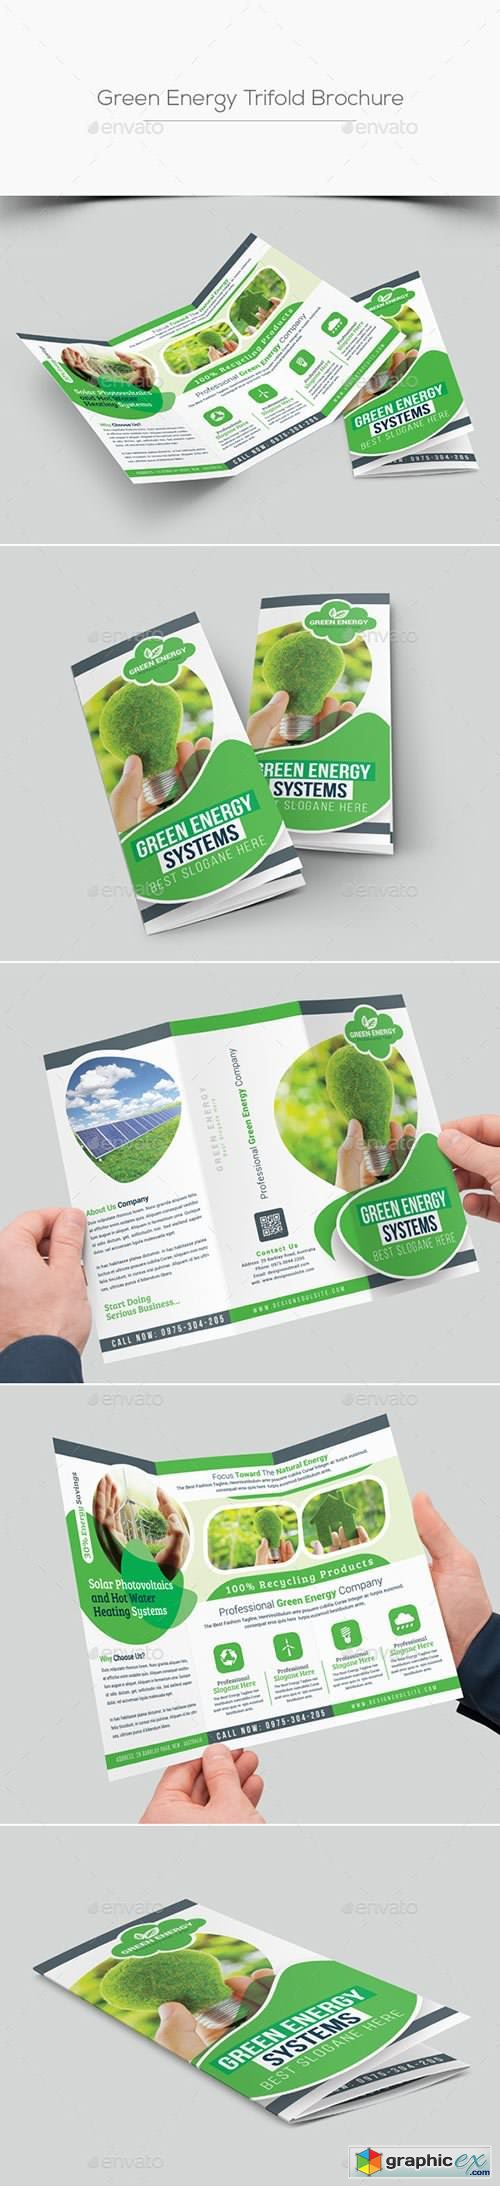 Green Energy Trifold Brochure